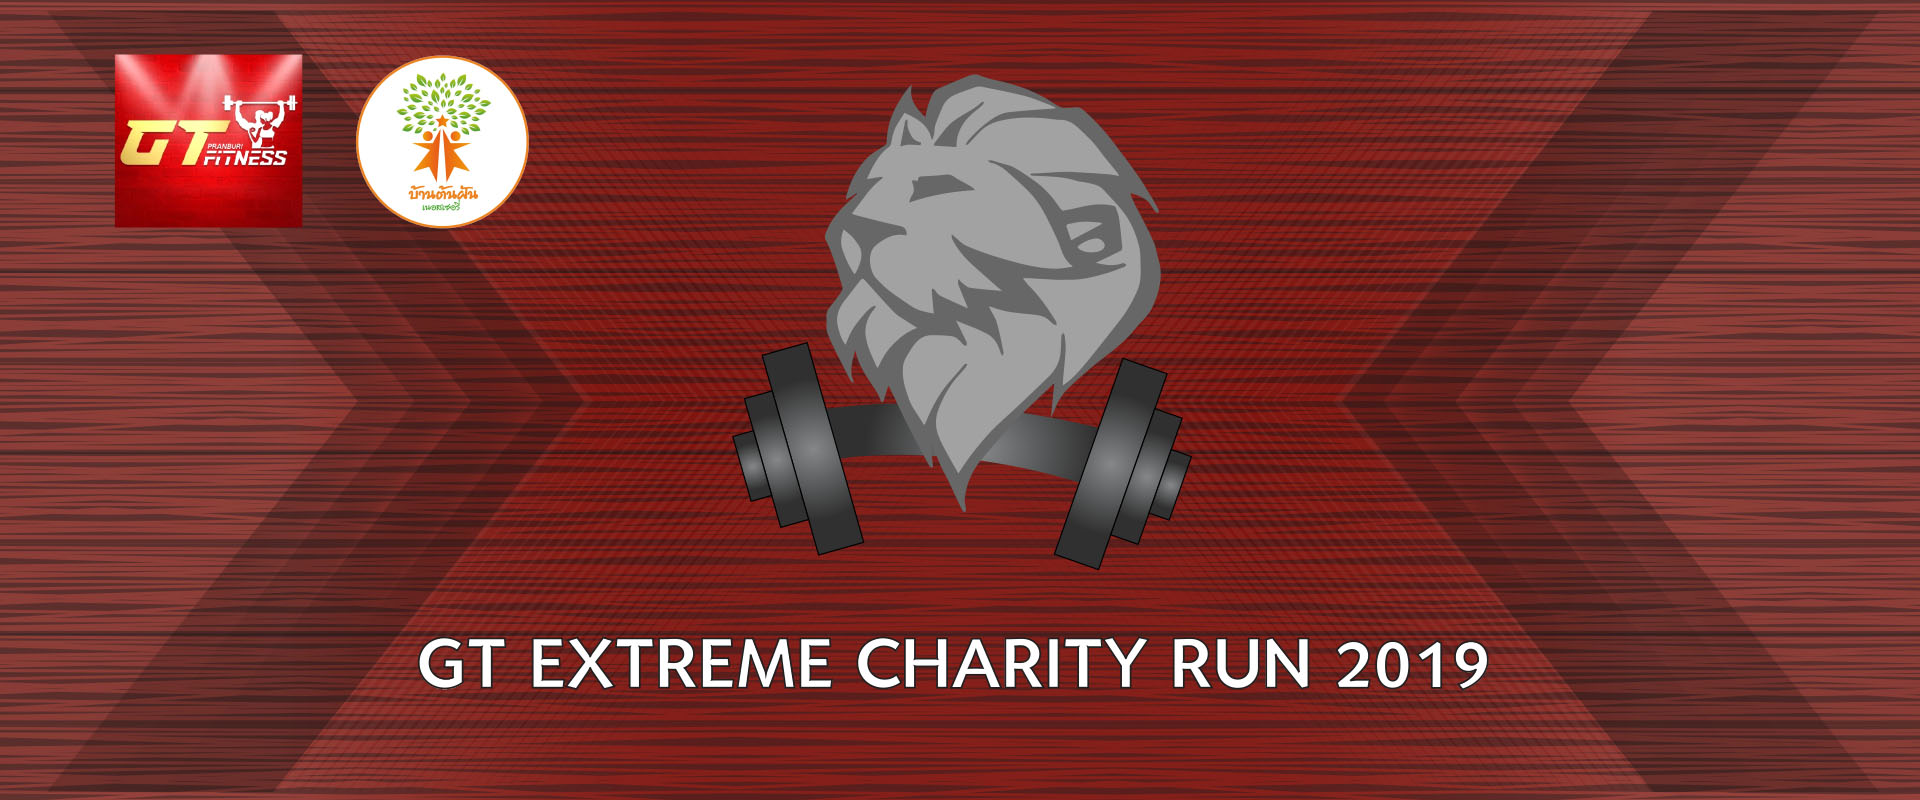 GT EXTREME CHARITY RUN 2019